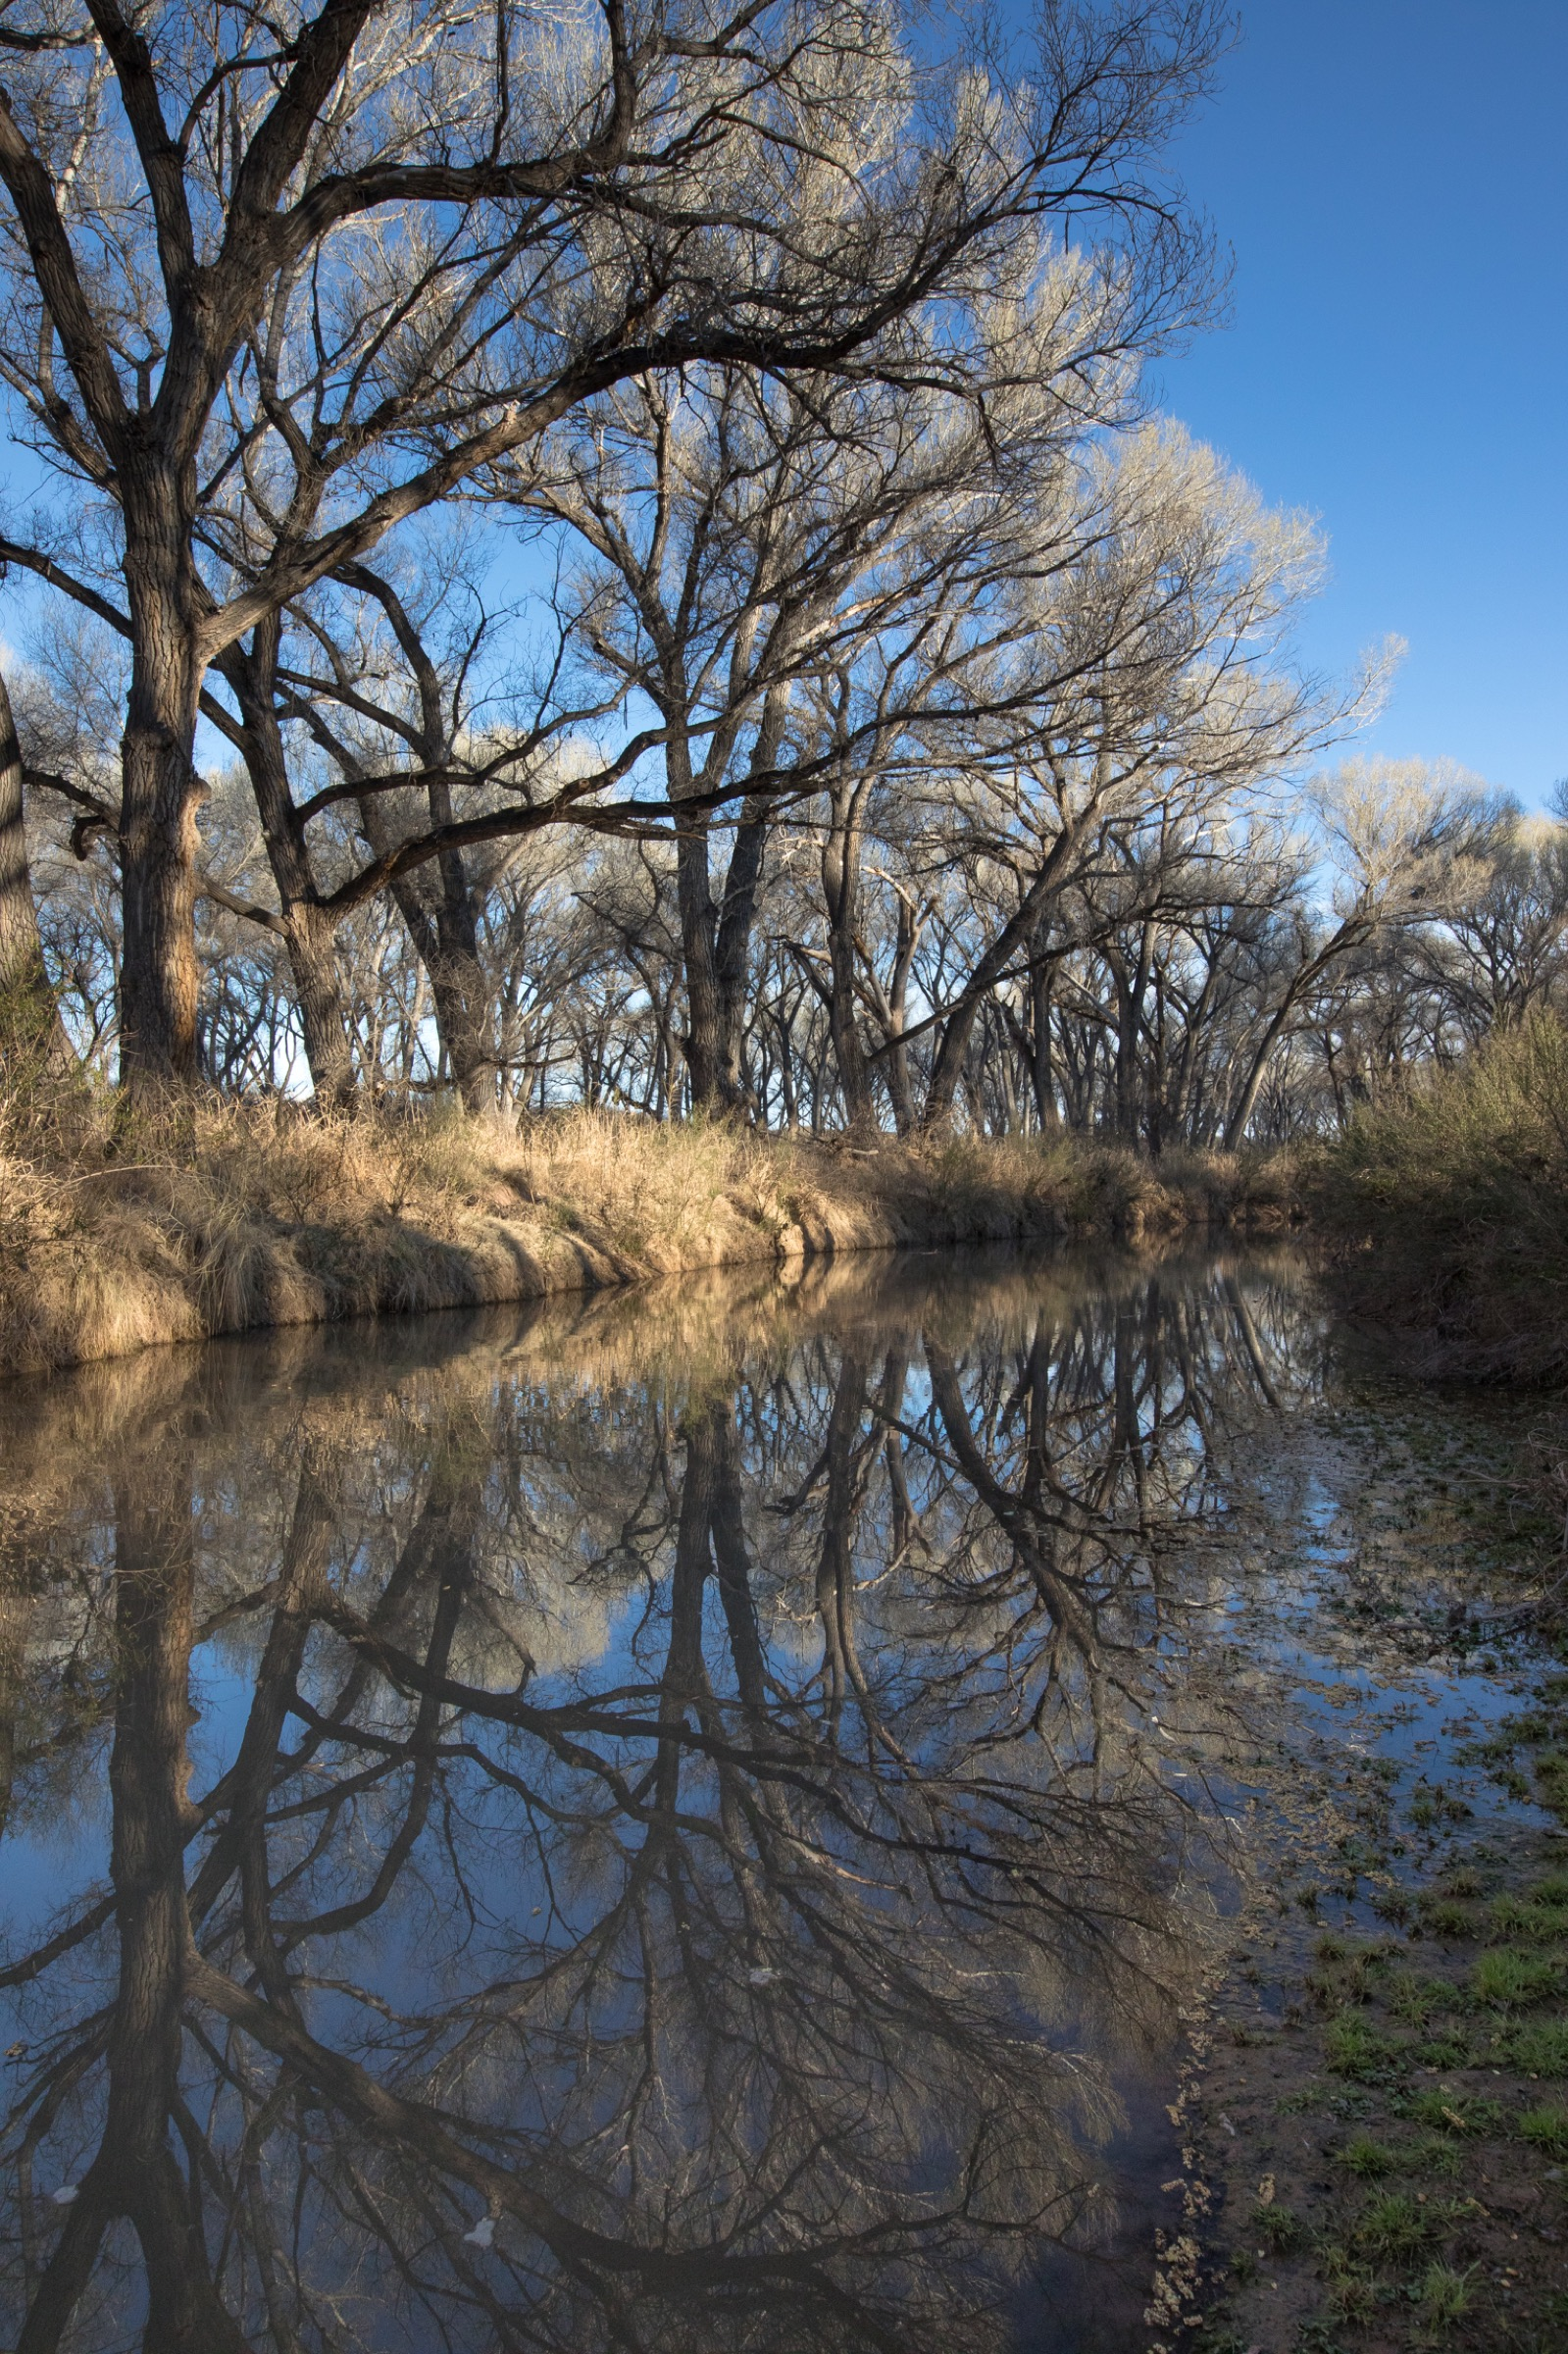 The San Pedro River is one of the last undammed rivers in the U.S. Southwest and one of the most important wildlife corridors between the U.S. and Mexico. Photograph by Krista Schyler